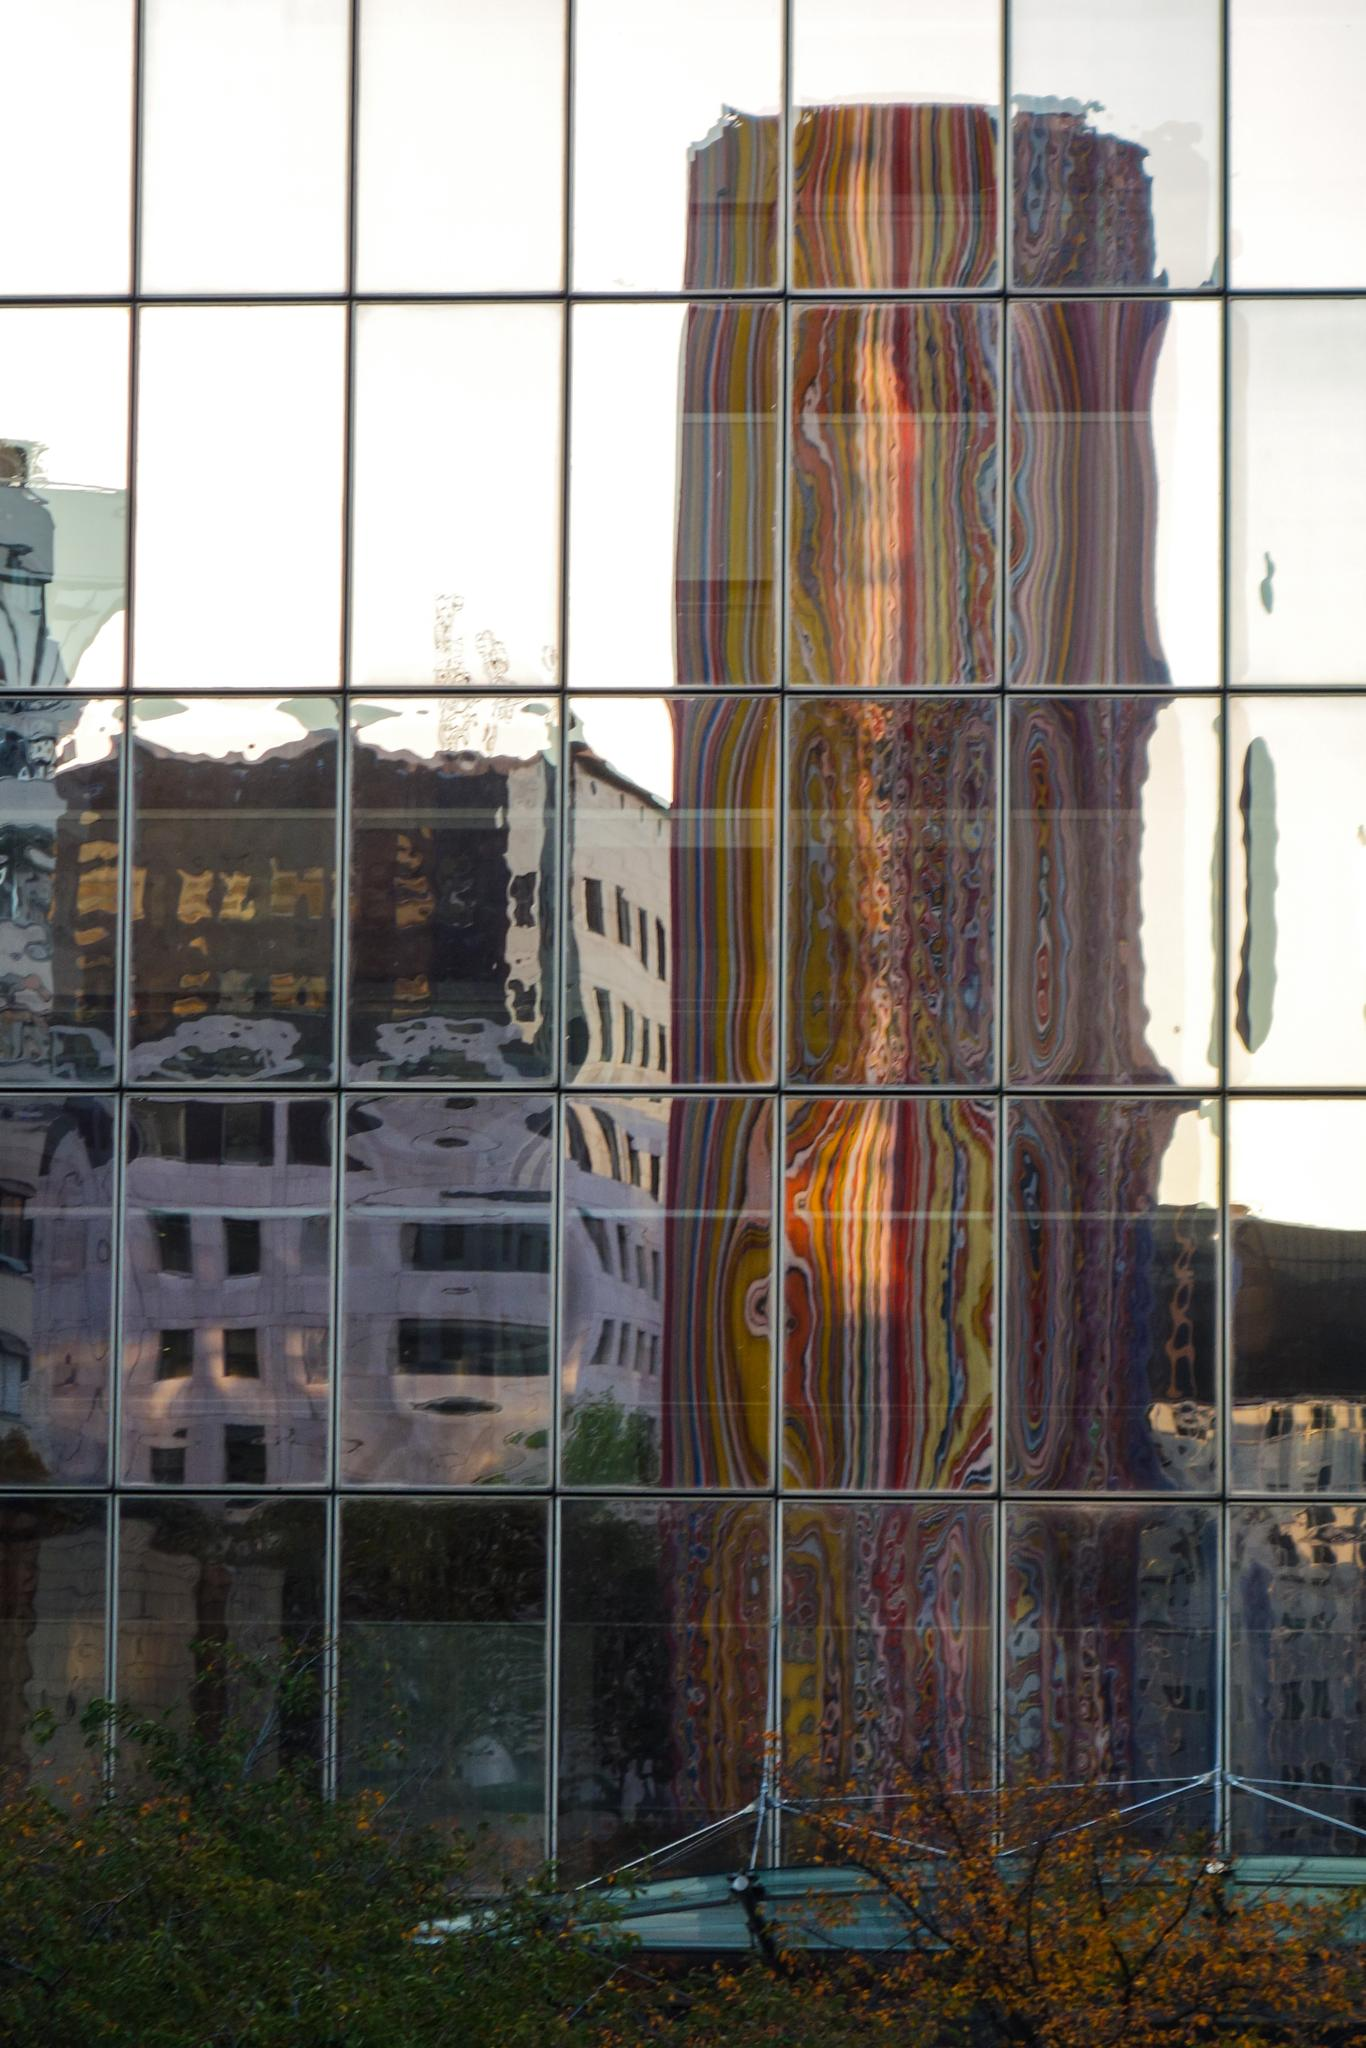 Le Moretti 3/4 (Reflection) by Carolyn Chase